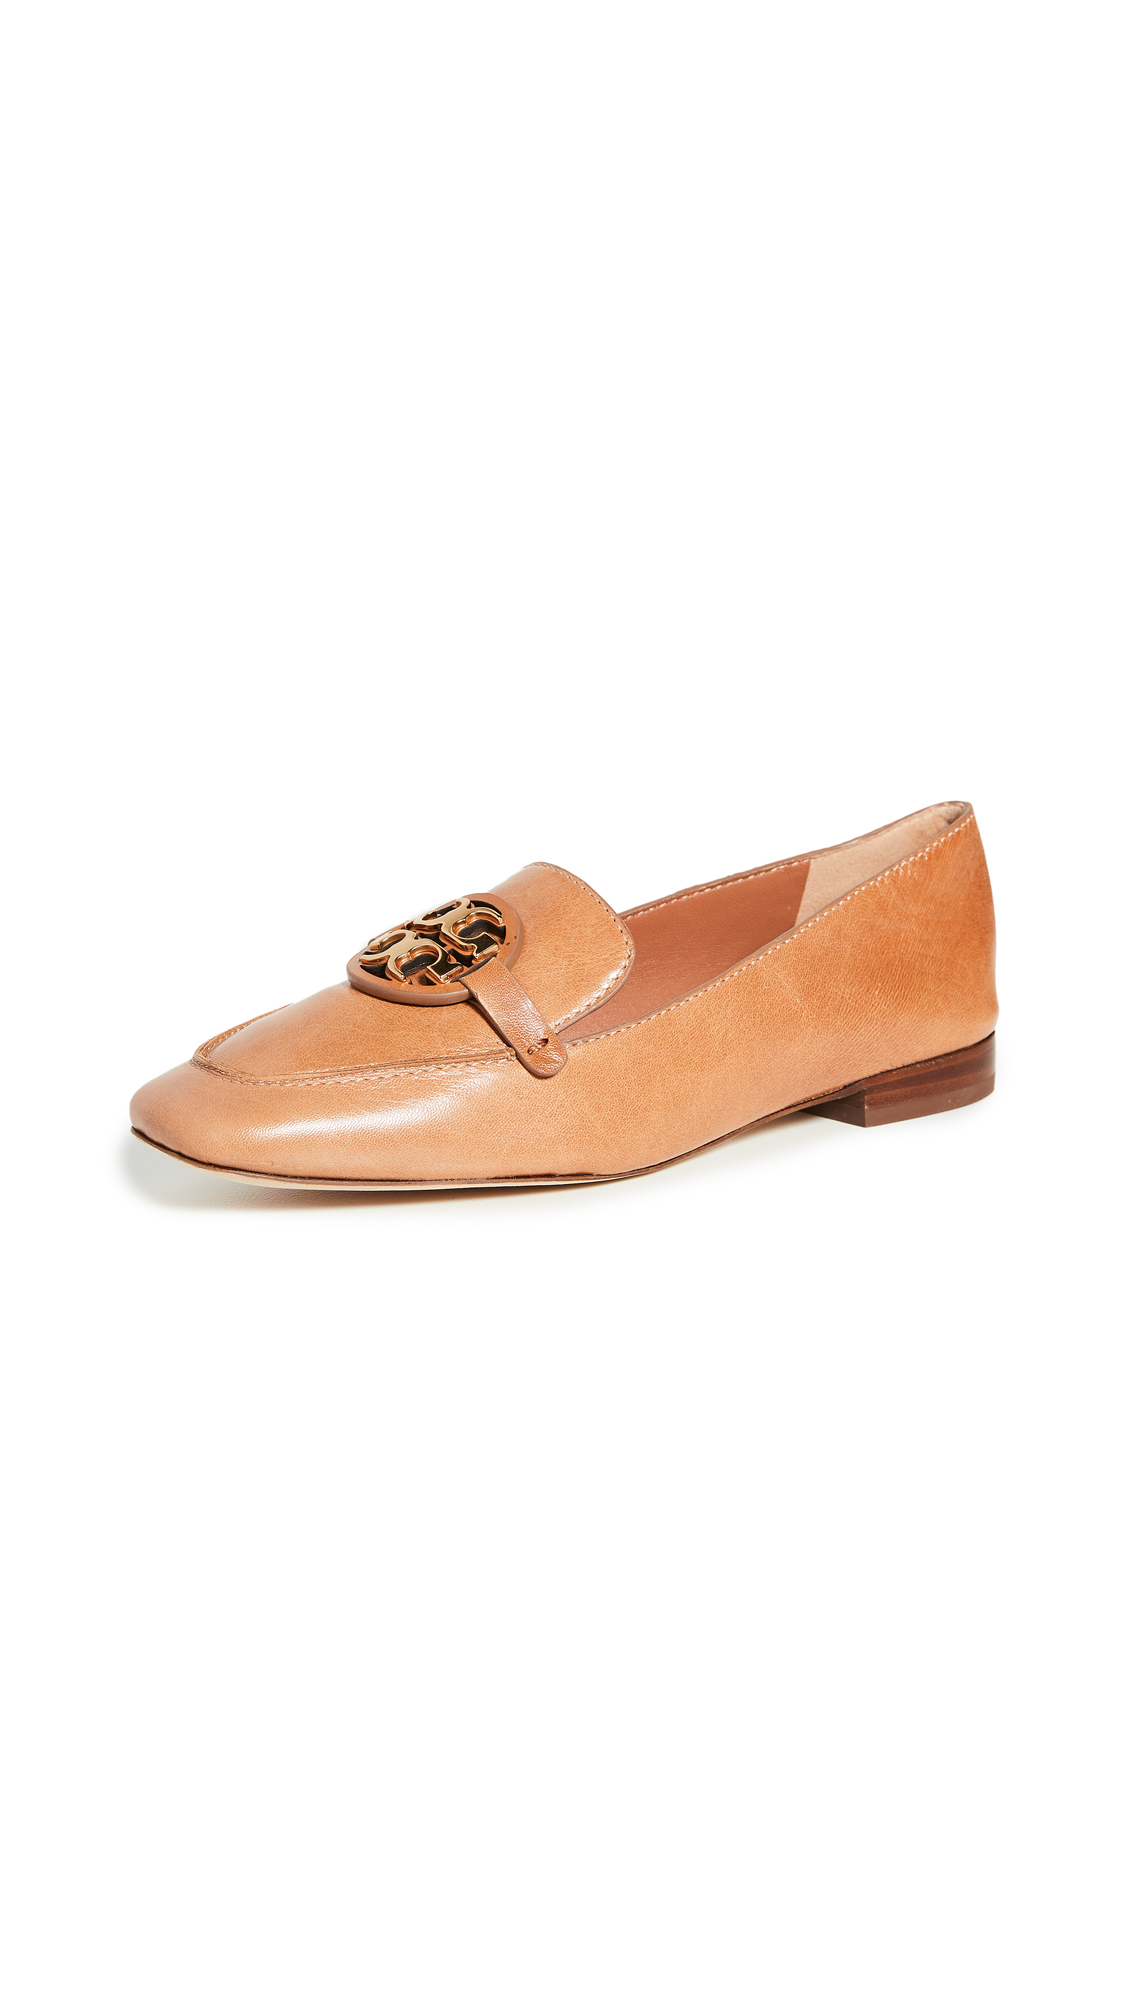 Buy Tory Burch 15mm Metal Miller Loafers online, shop Tory Burch